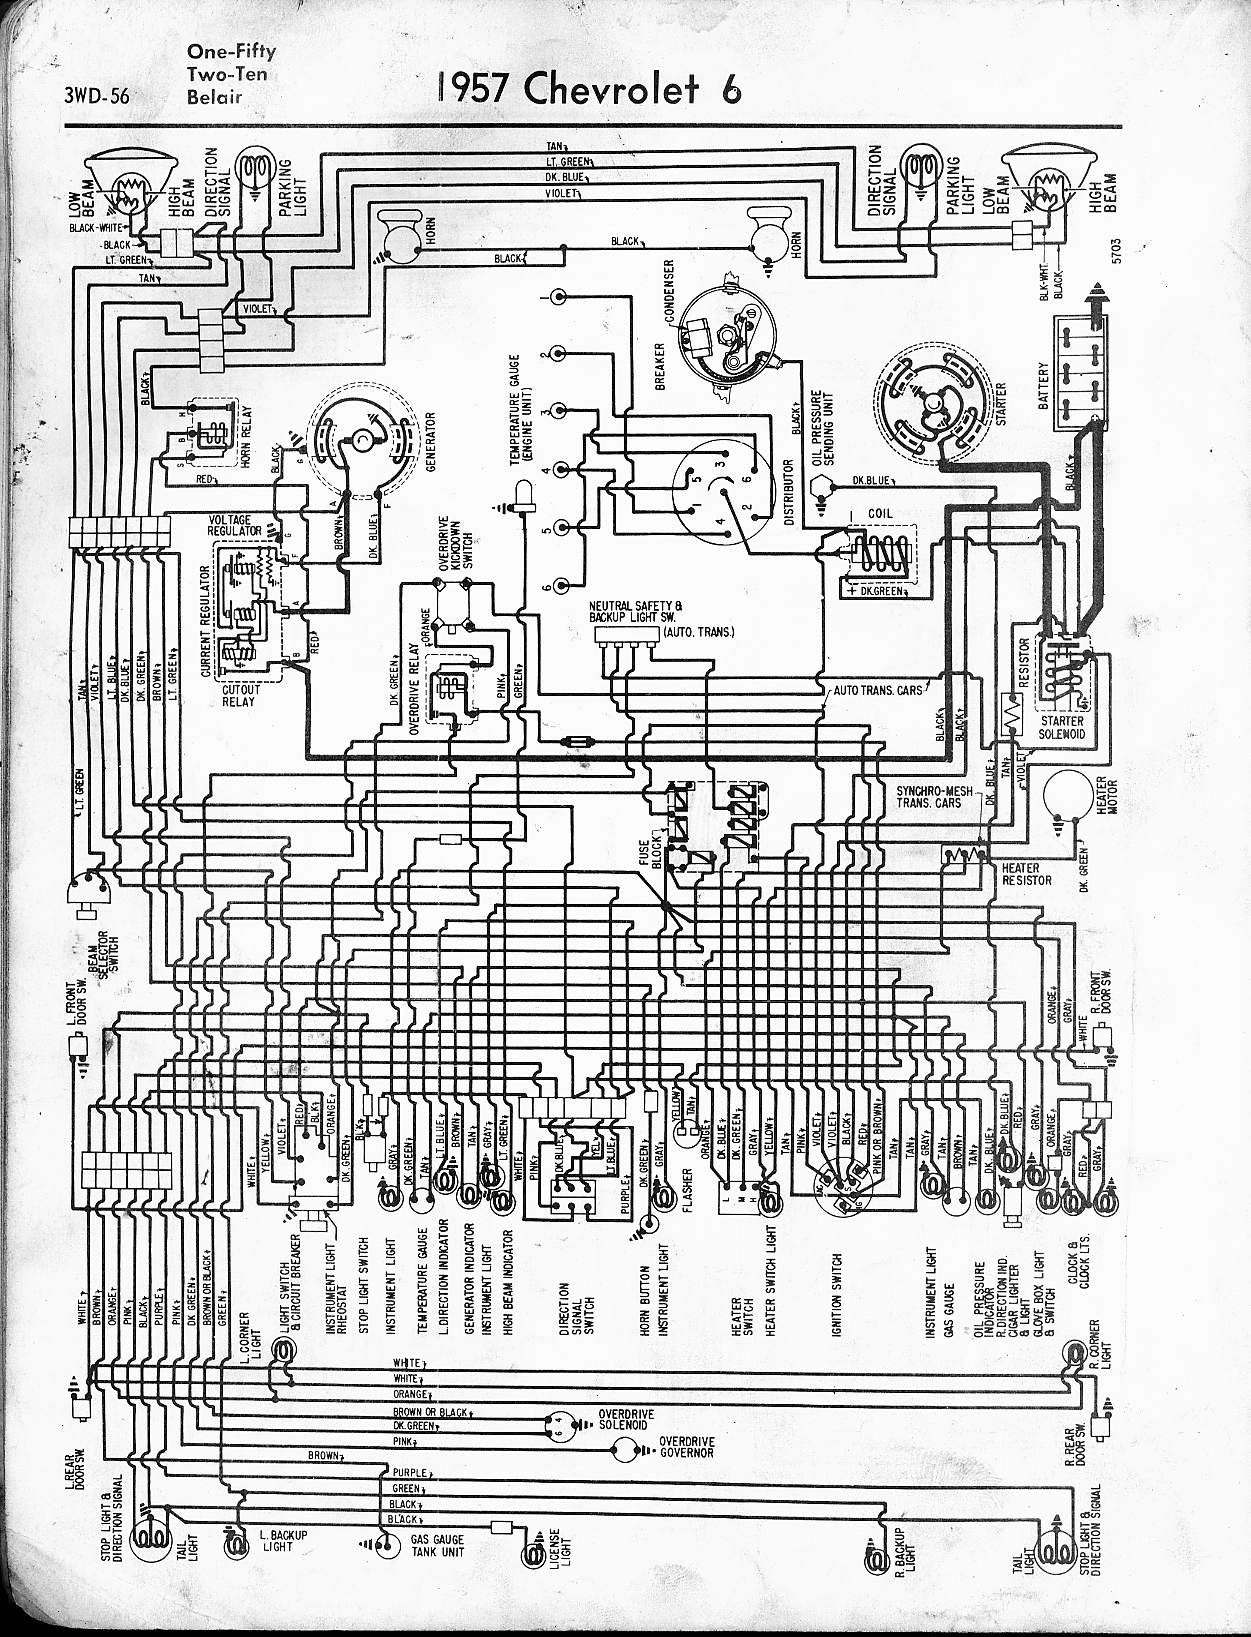 hight resolution of 1957 chevy bel air wiring diagram wiring diagram third level 1957 corvette wiring diagram 1957 bel air wiring diagram schematic